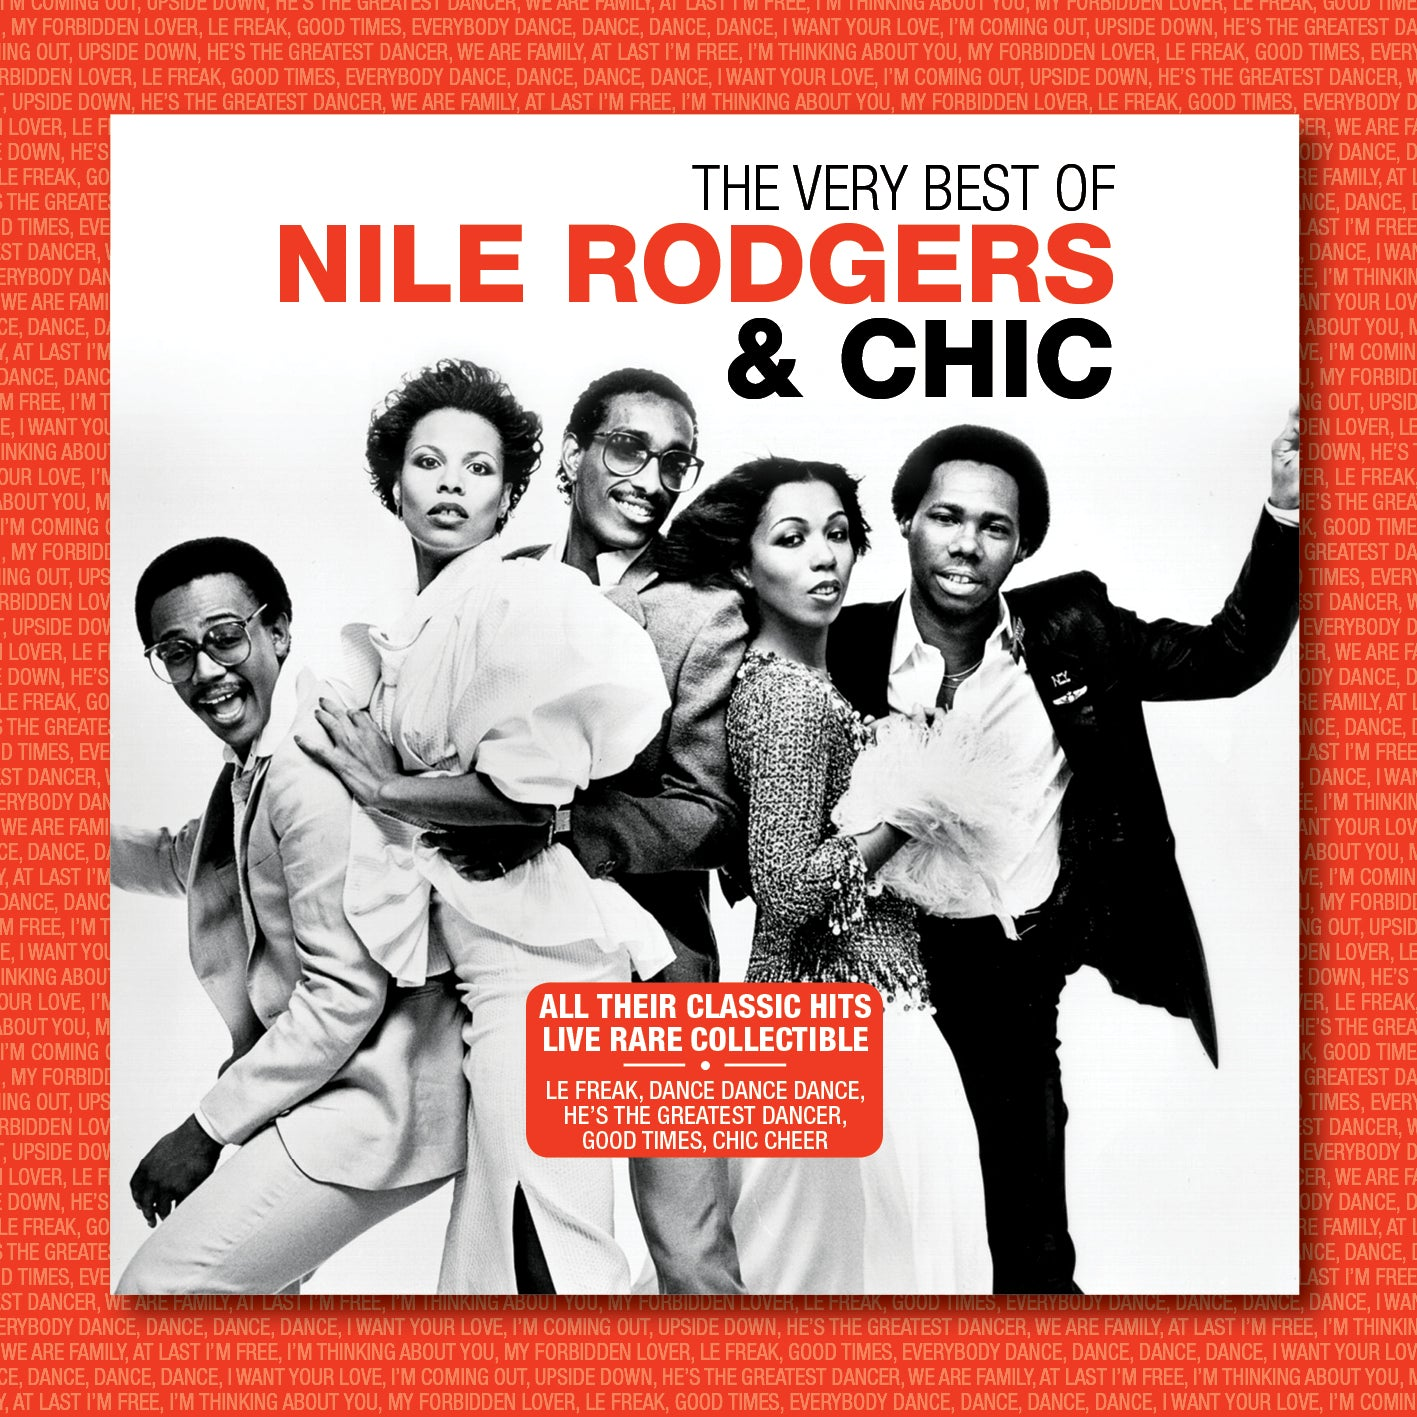 FANFARE231 - NILE RODGERS & CHIC - THE V